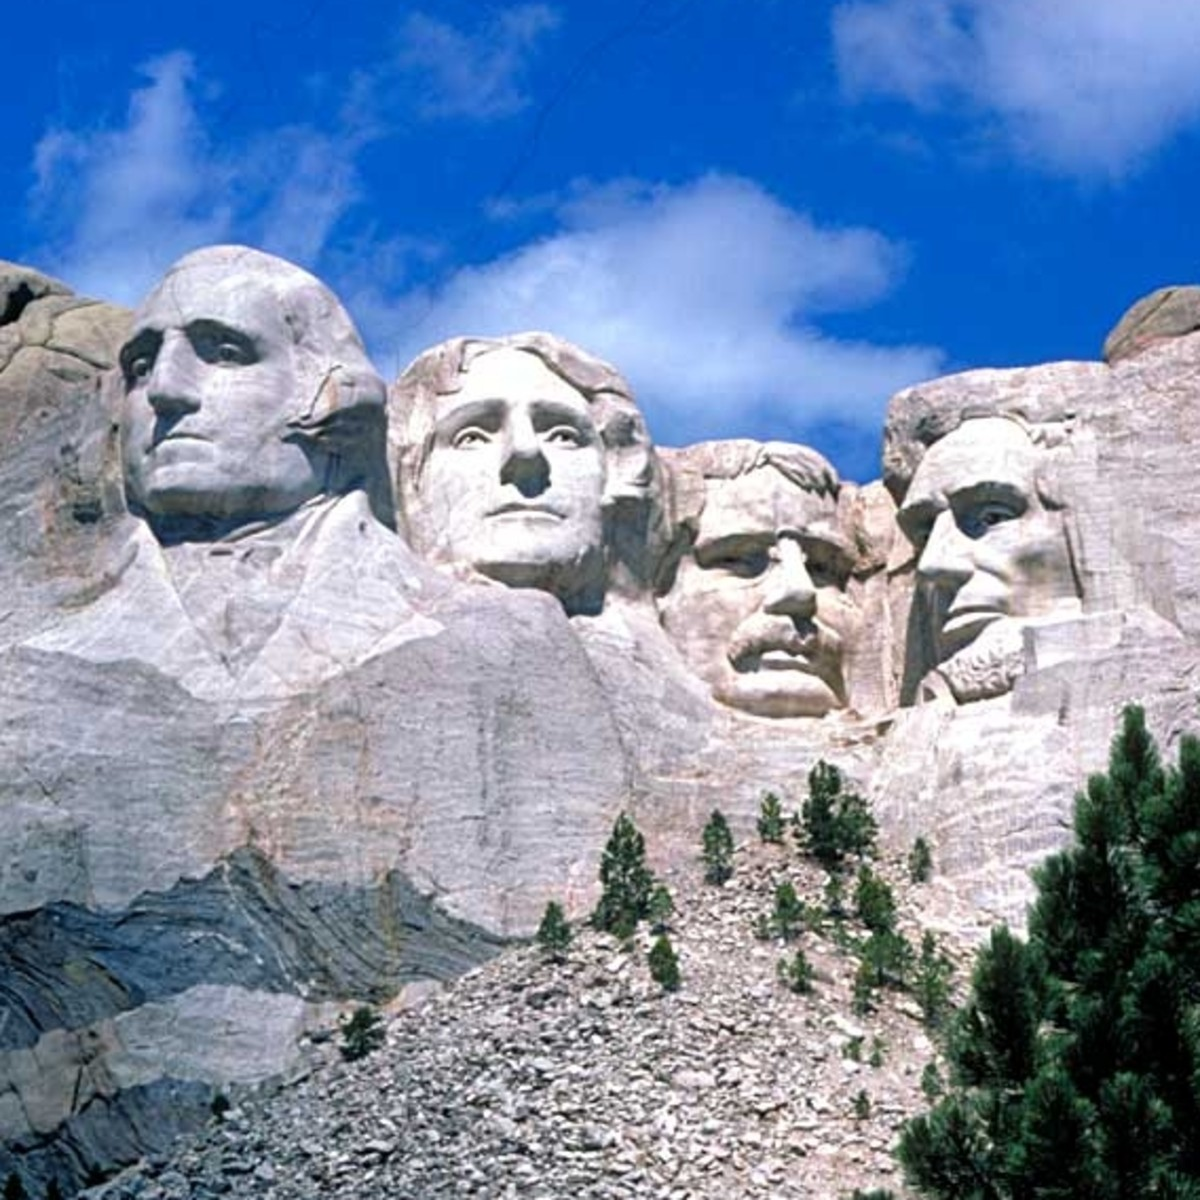 Mount Rushmore - George Washington - Thomas Jefferson - Theodore Roosevelt - Abraham Lincoln